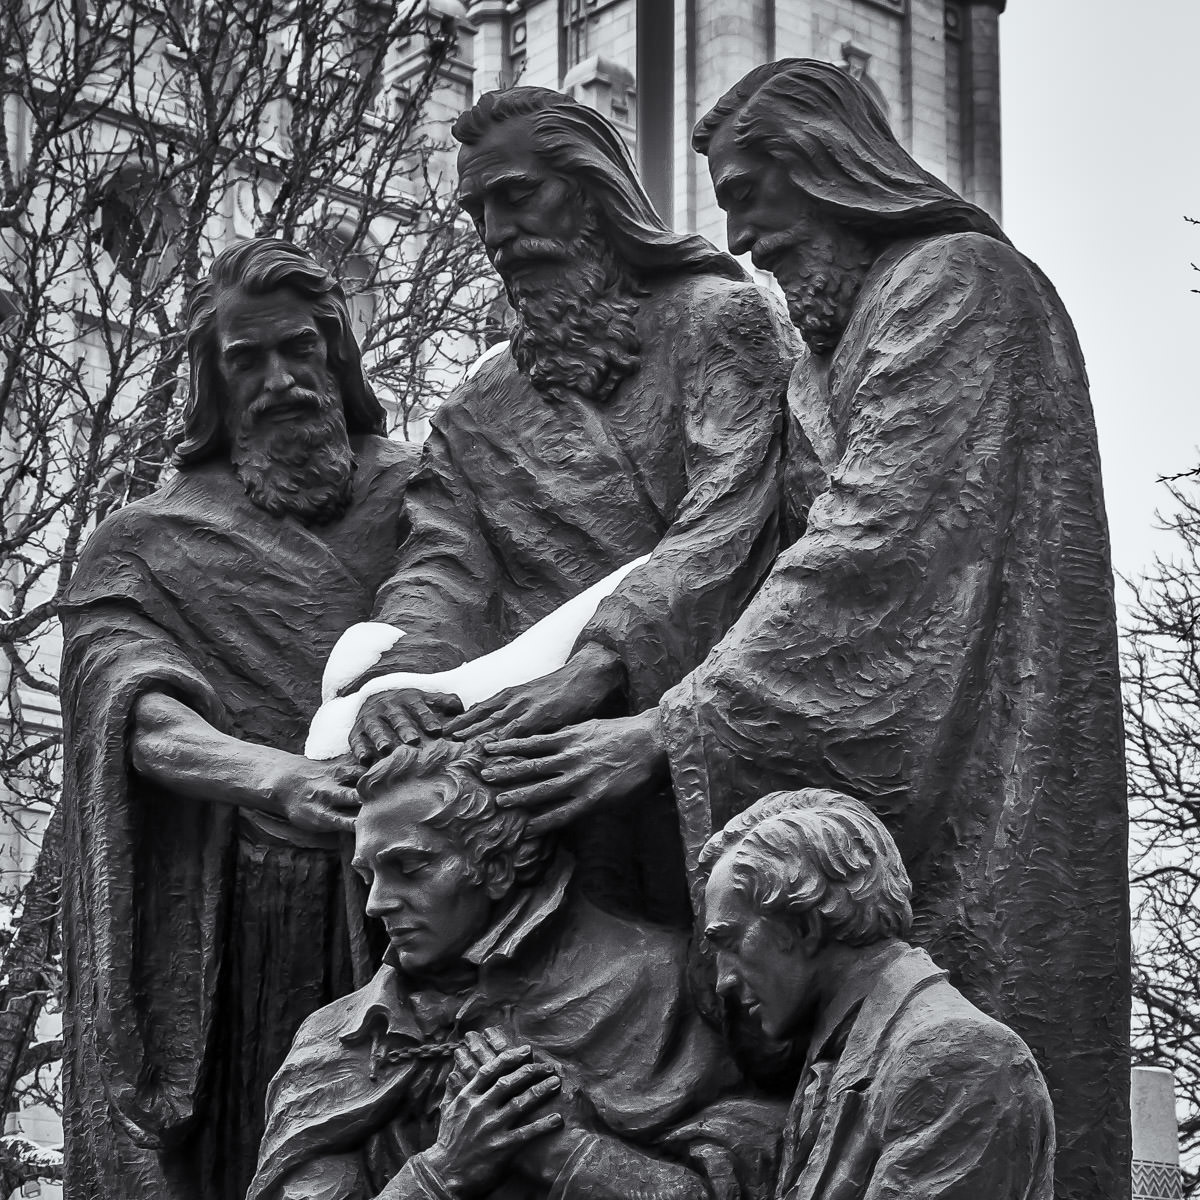 A bronze statue in Salt Lake City, Utah's Temple Square depicting Peter, James and John in the act of conferring the Melchizedek priesthood to Joseph Smith and Oliver Cowdery, founders of the Latter Day Saints movement.